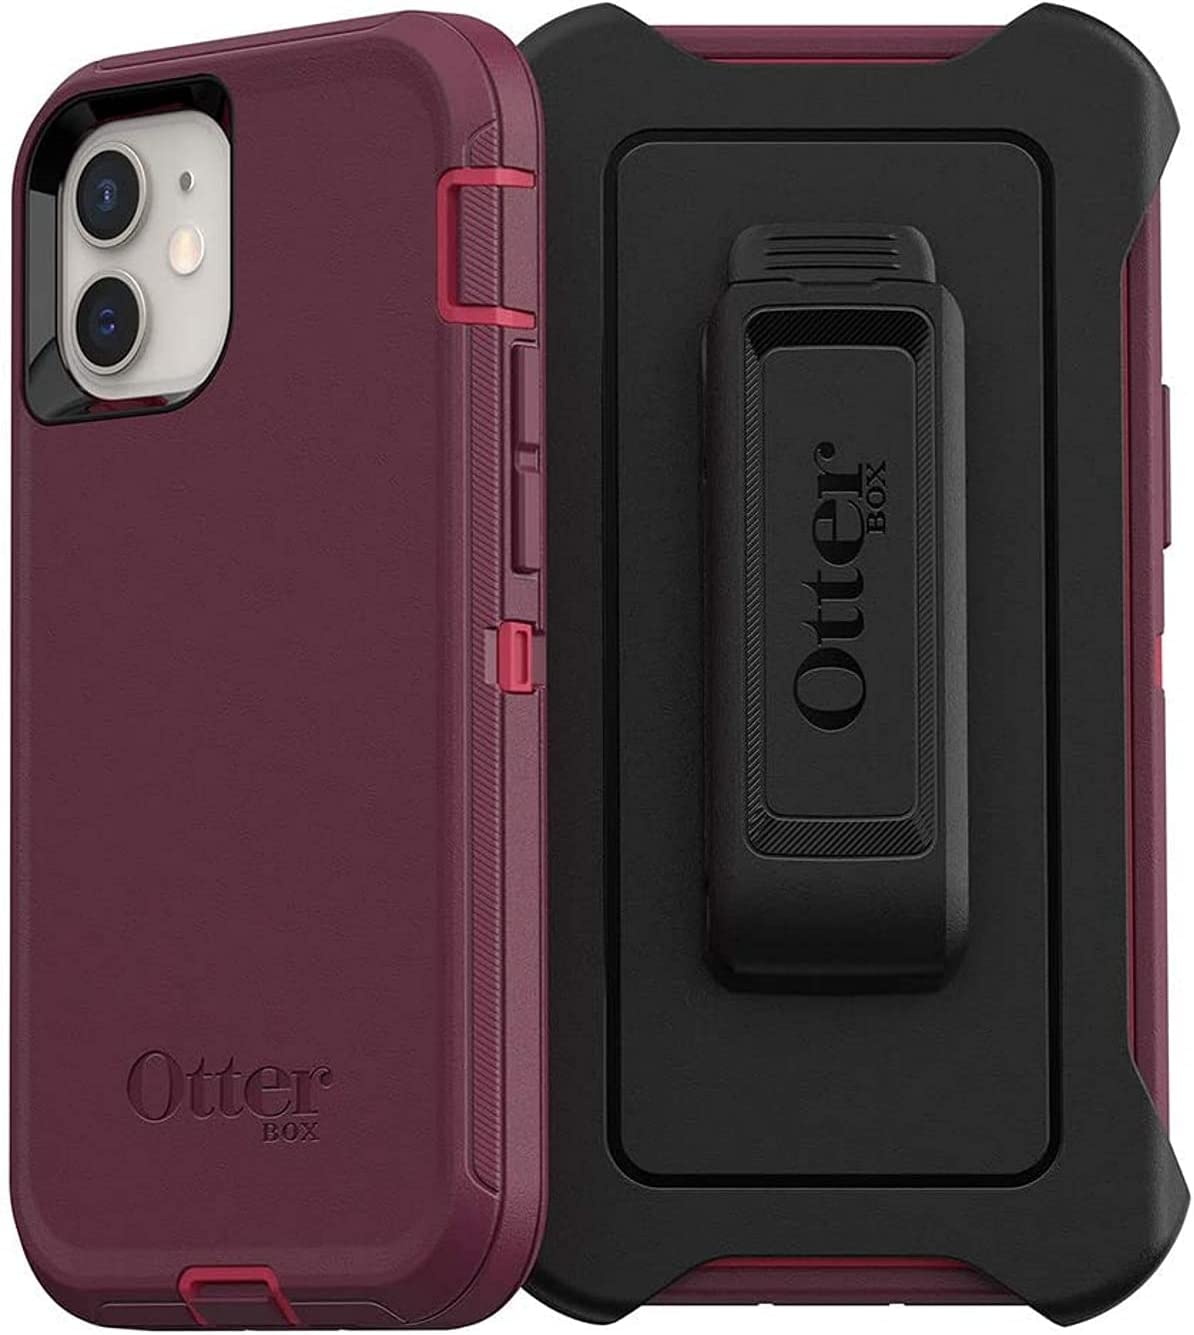 OtterBox Defender Series SCREENLESS Edition Case for iPhone 12 Mini - Non-Retail Packaging - Berry Potion (Raspberry Wine/Boysenberry)